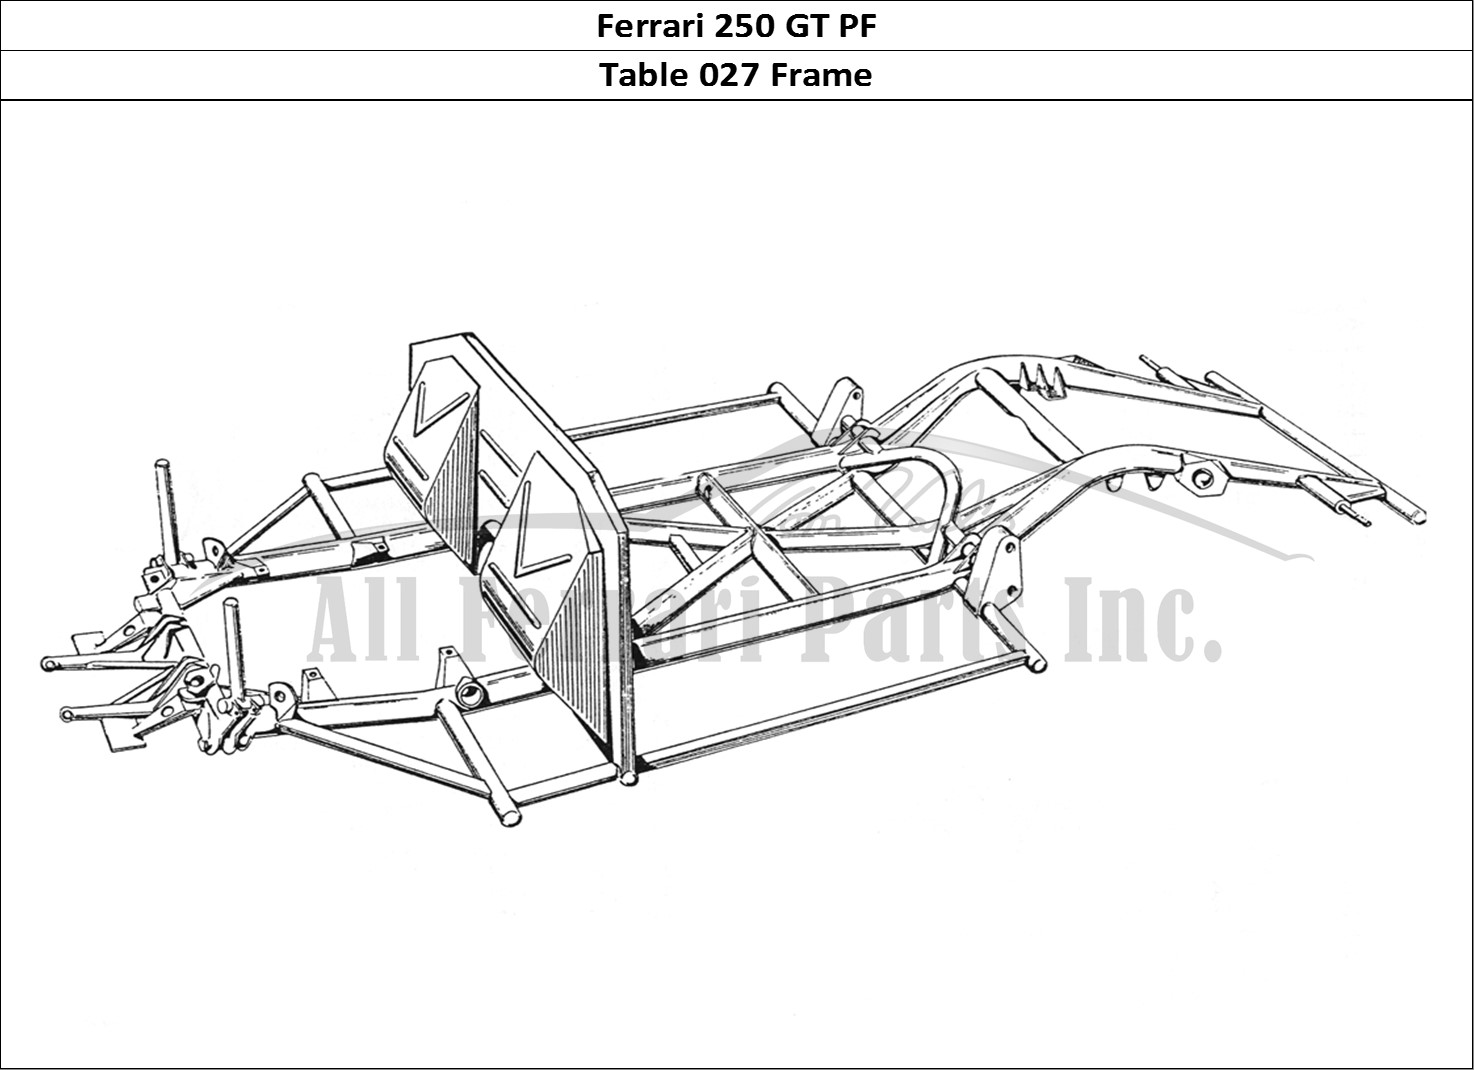 Buy original Ferrari 250 GT PF 027 Frame Ferrari parts